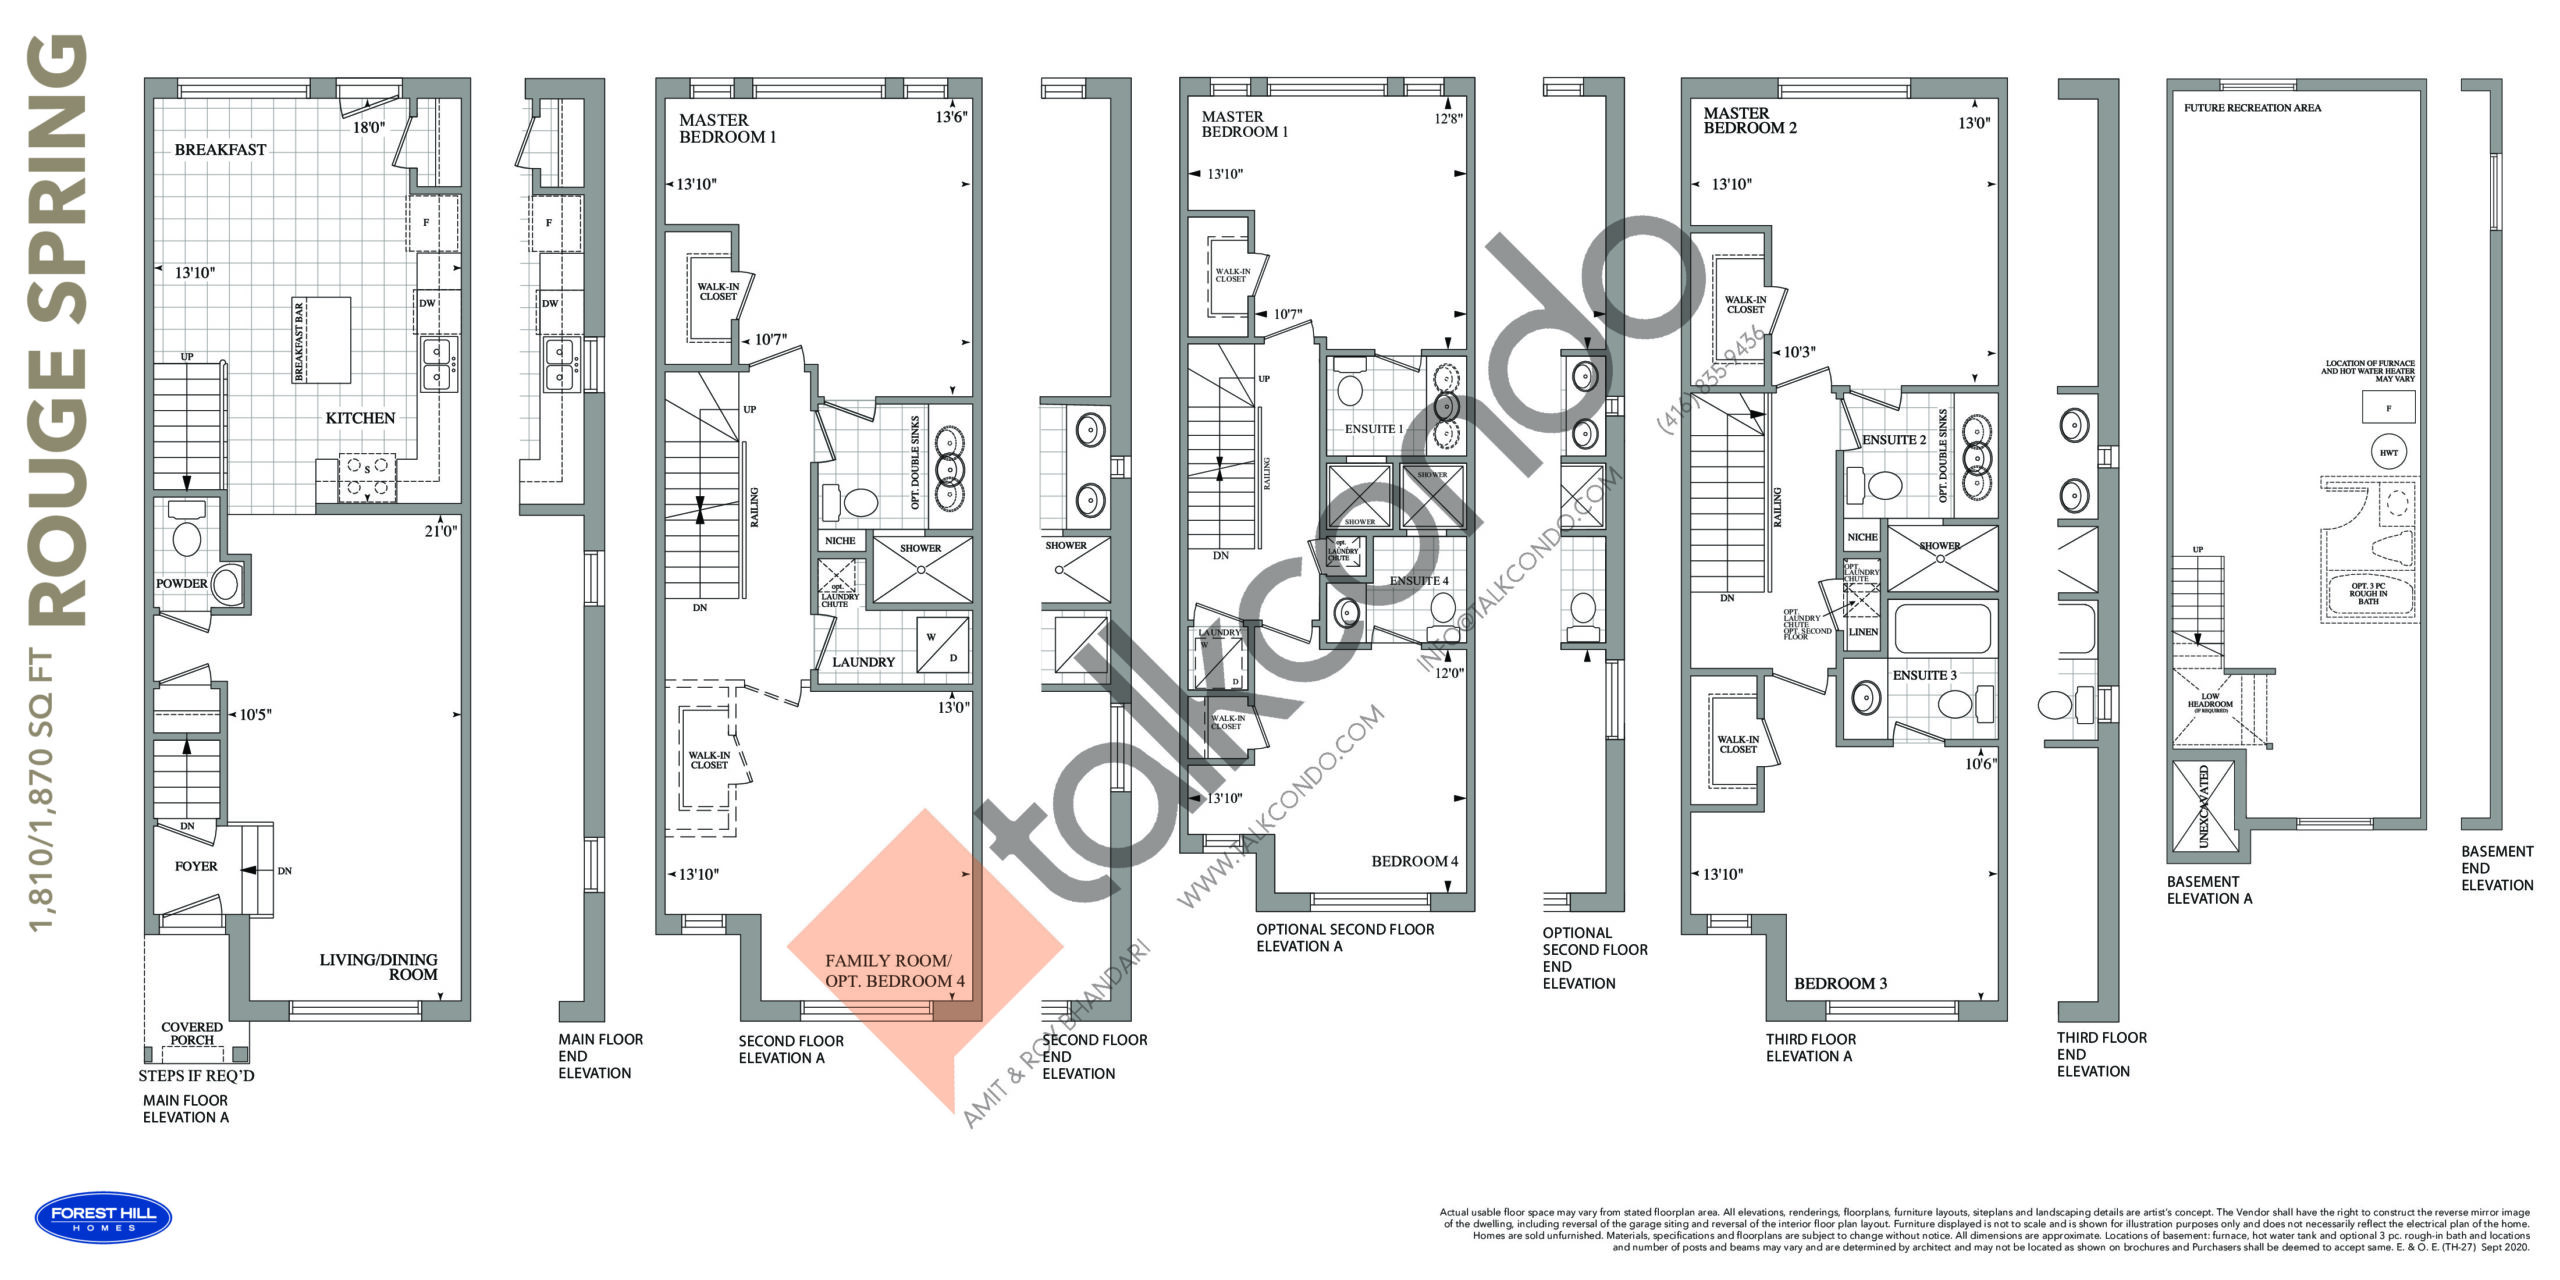 Rouge Spring Floor Plan at Cornell Rouge Phase 7 Towns - 1870 sq.ft